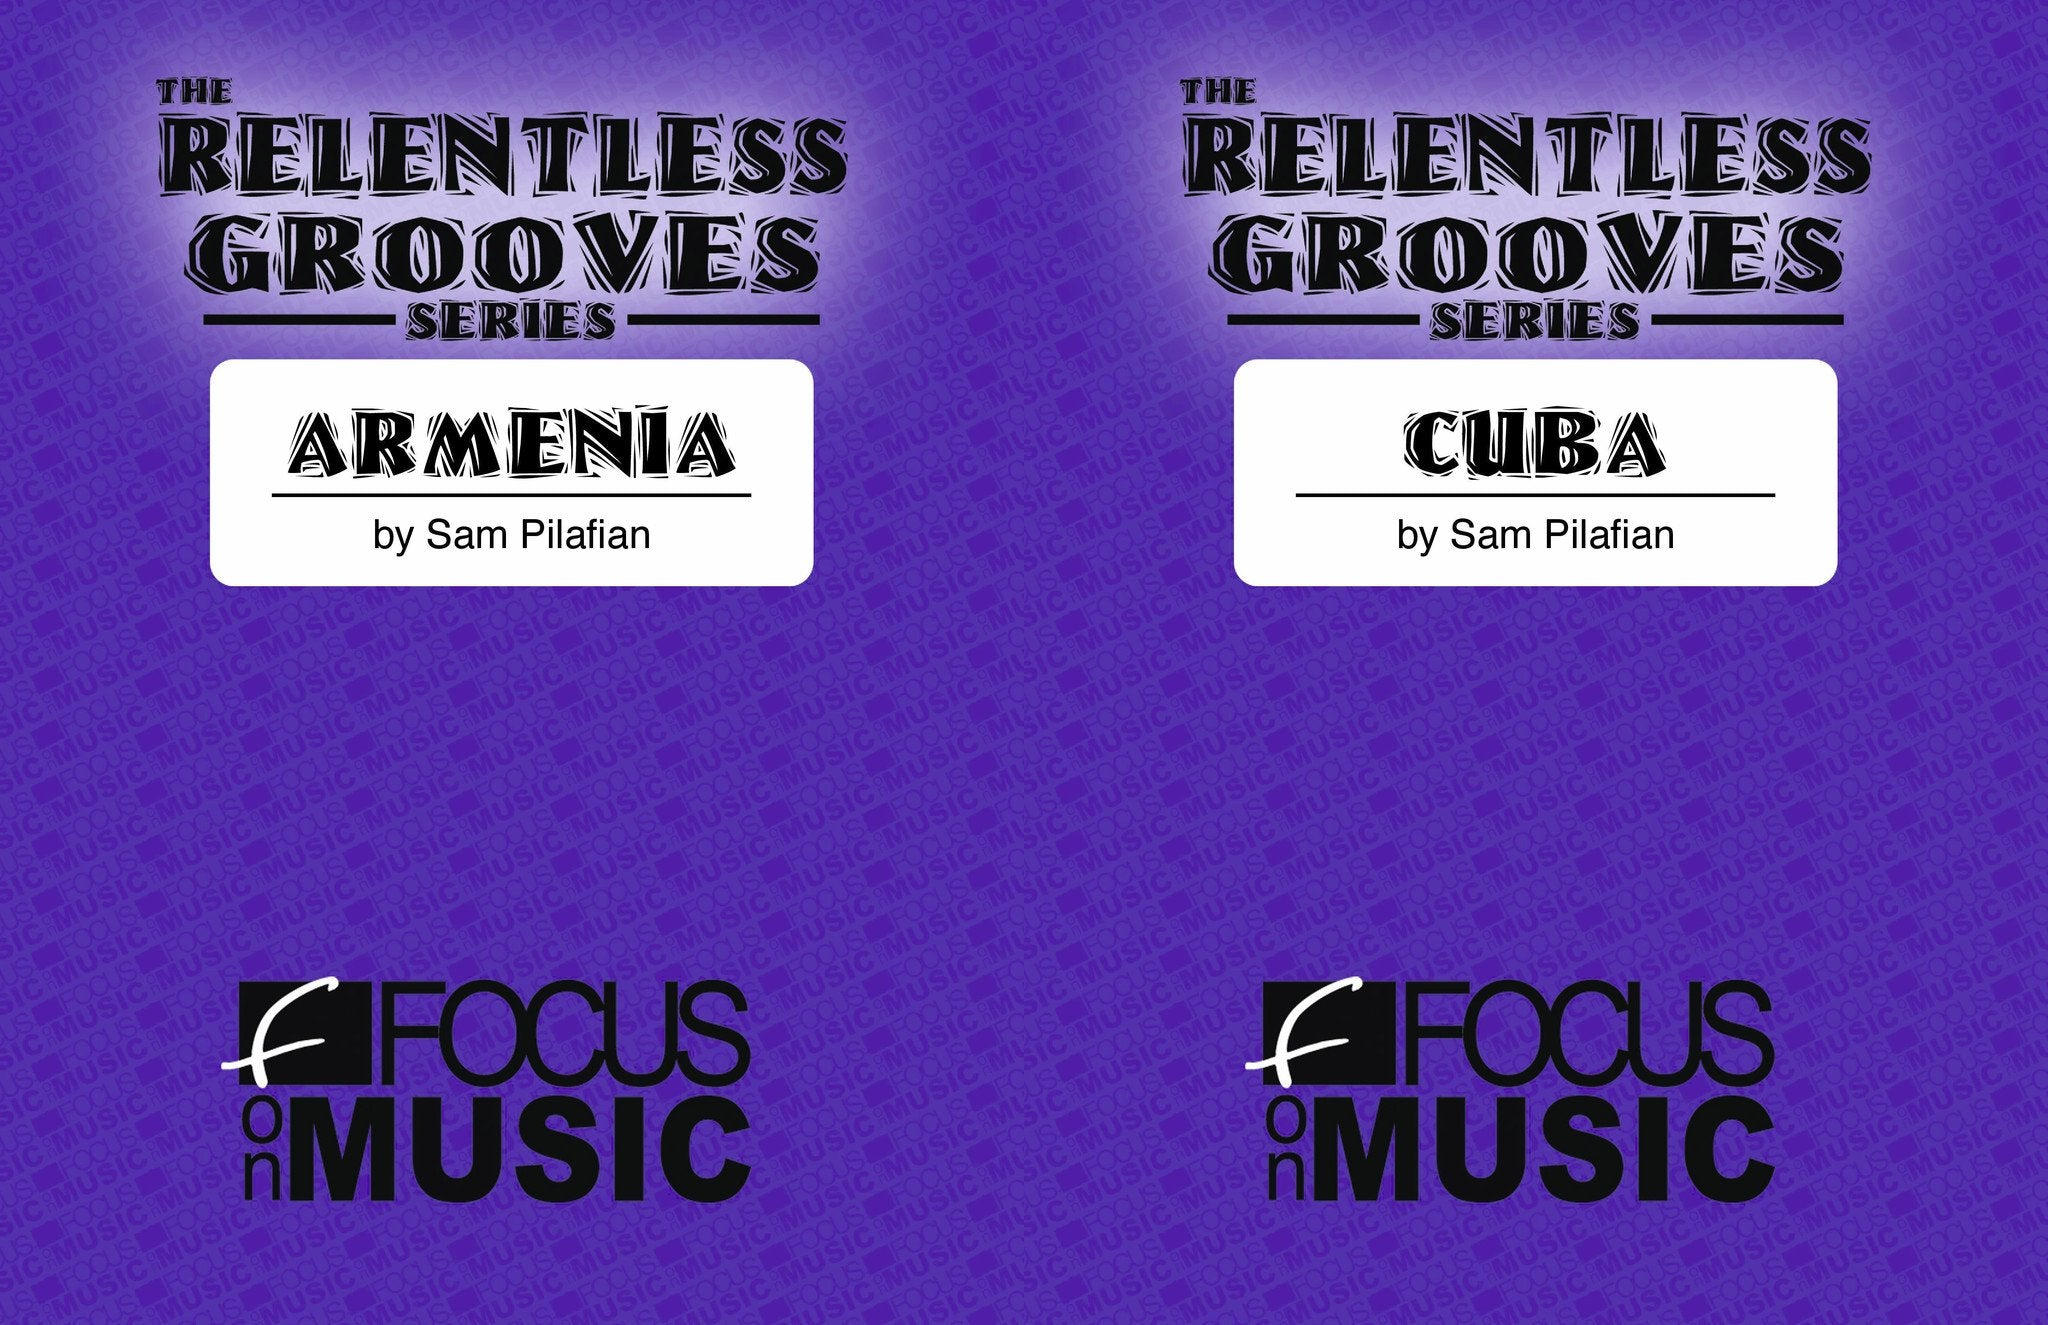 The Relentless Grooves Series